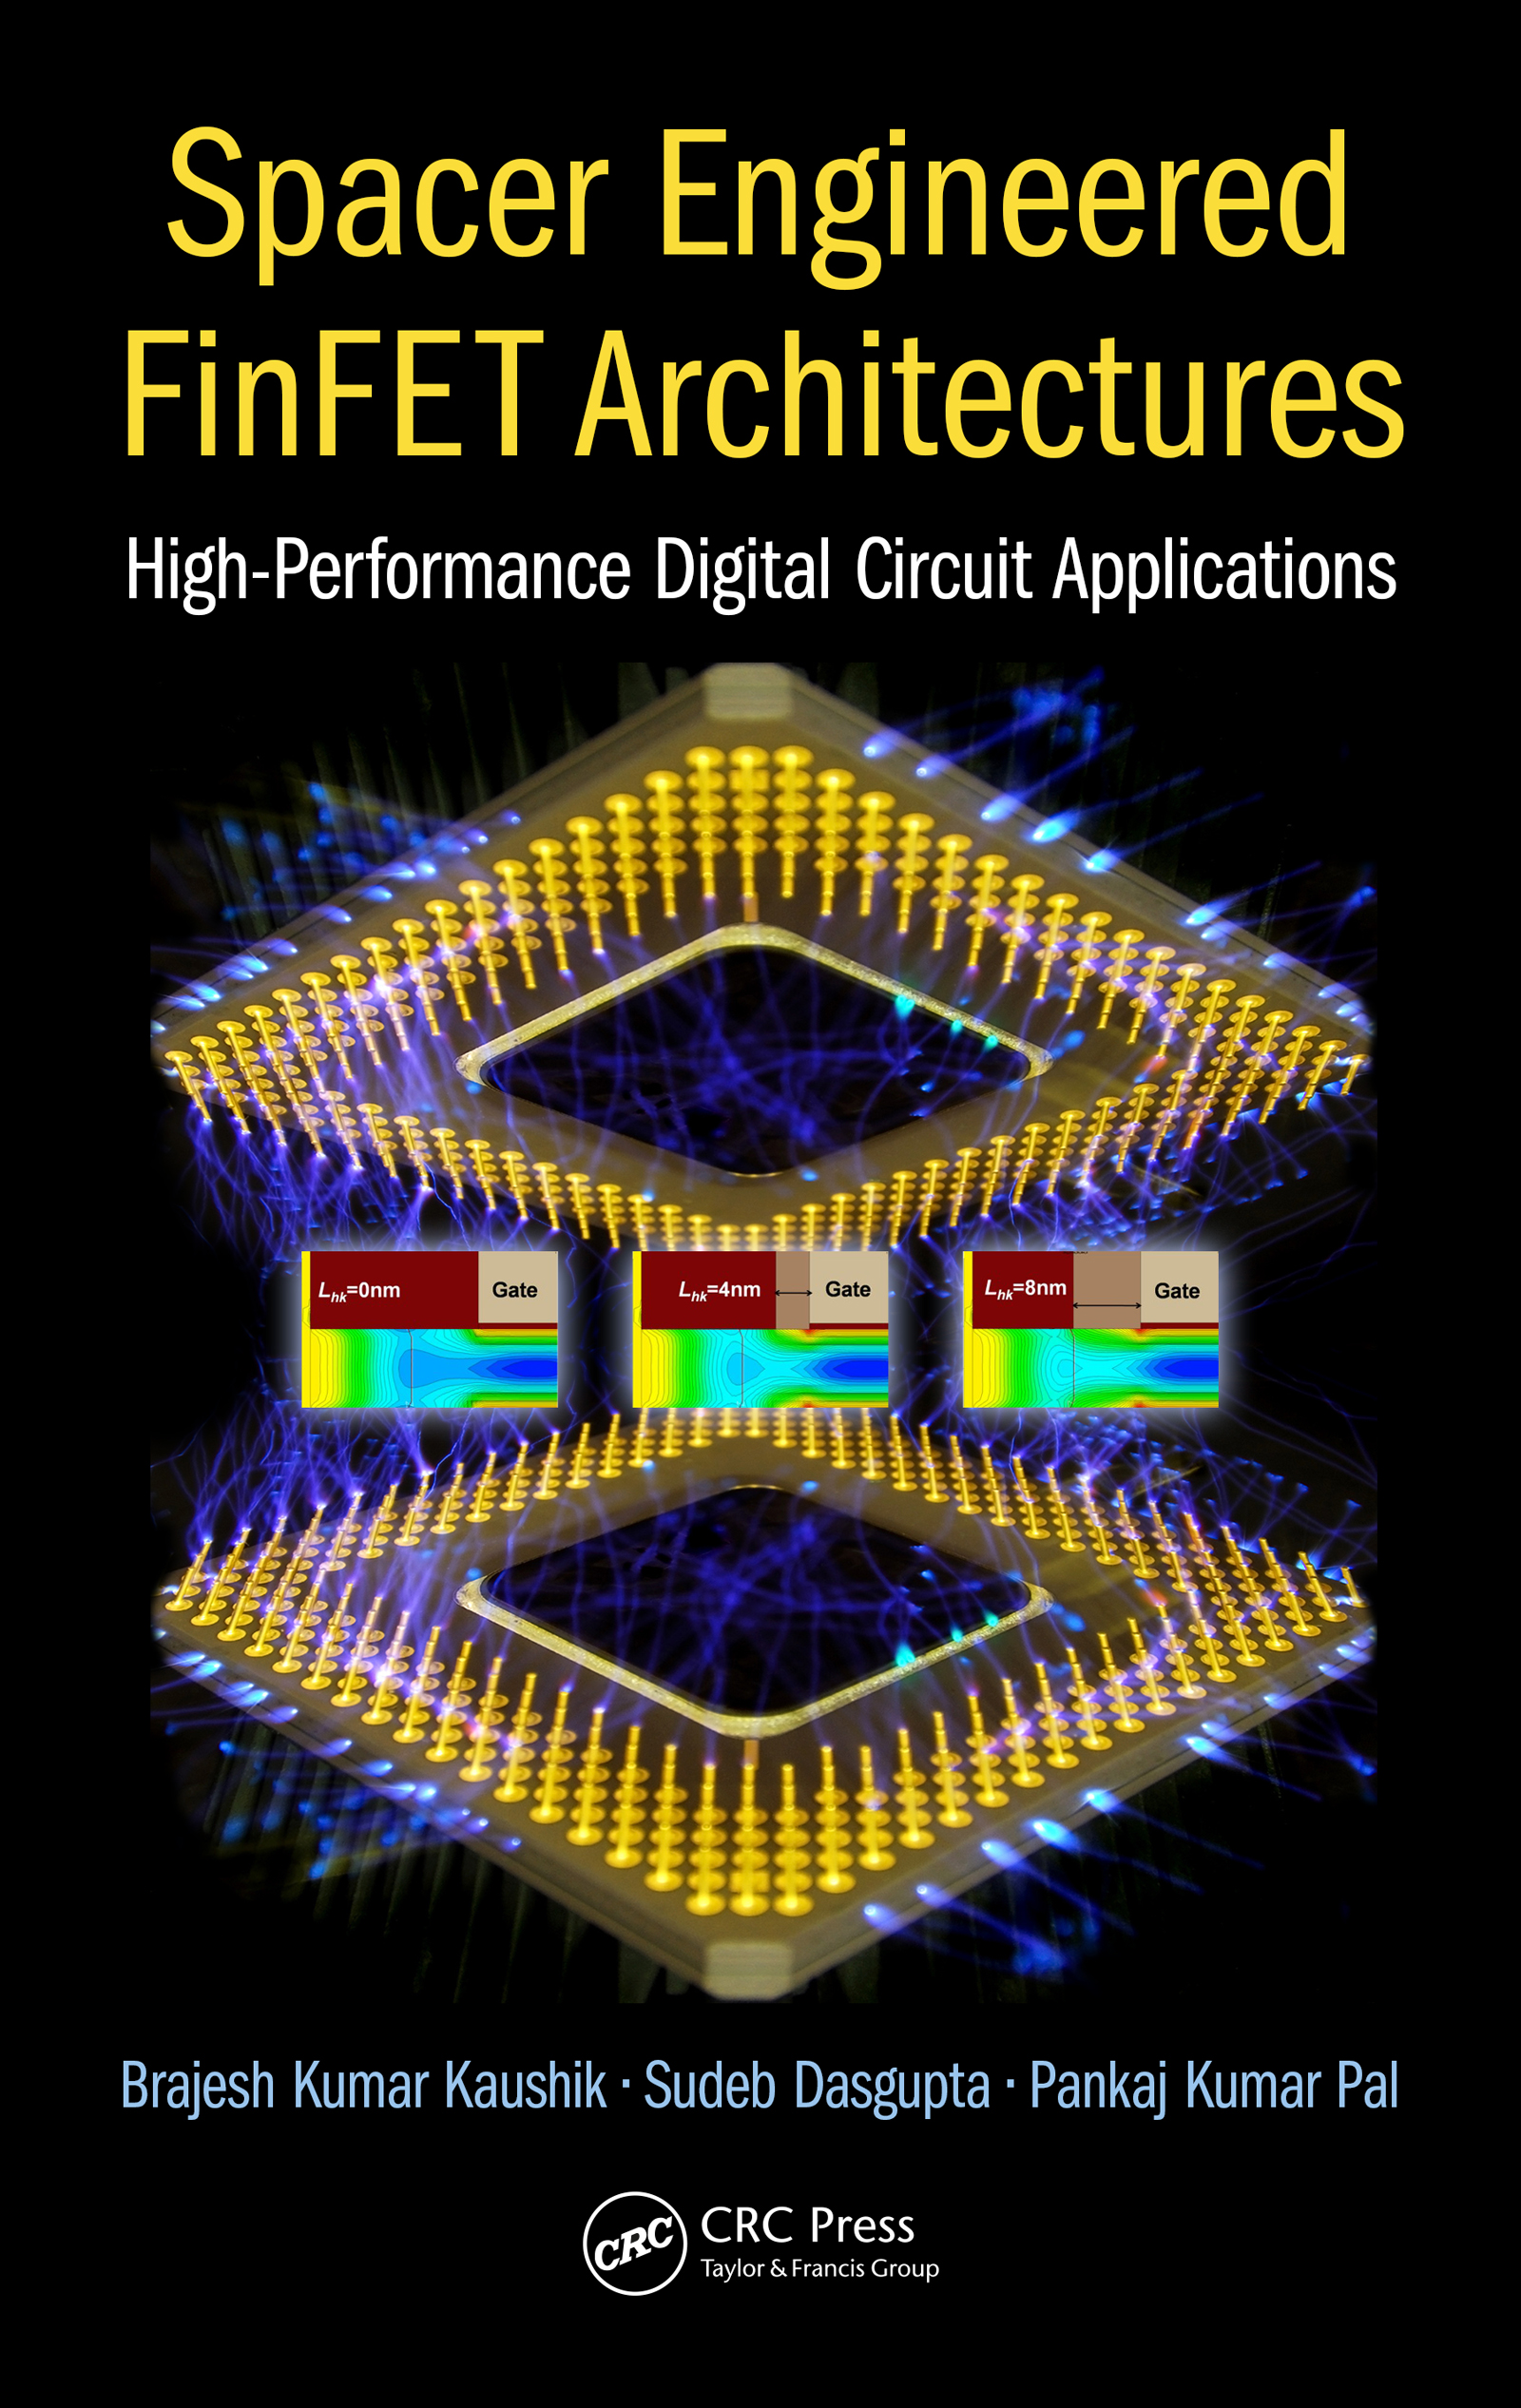 Capacitive Analysis and Dual-k FinFET-Based Digital Circuit Design